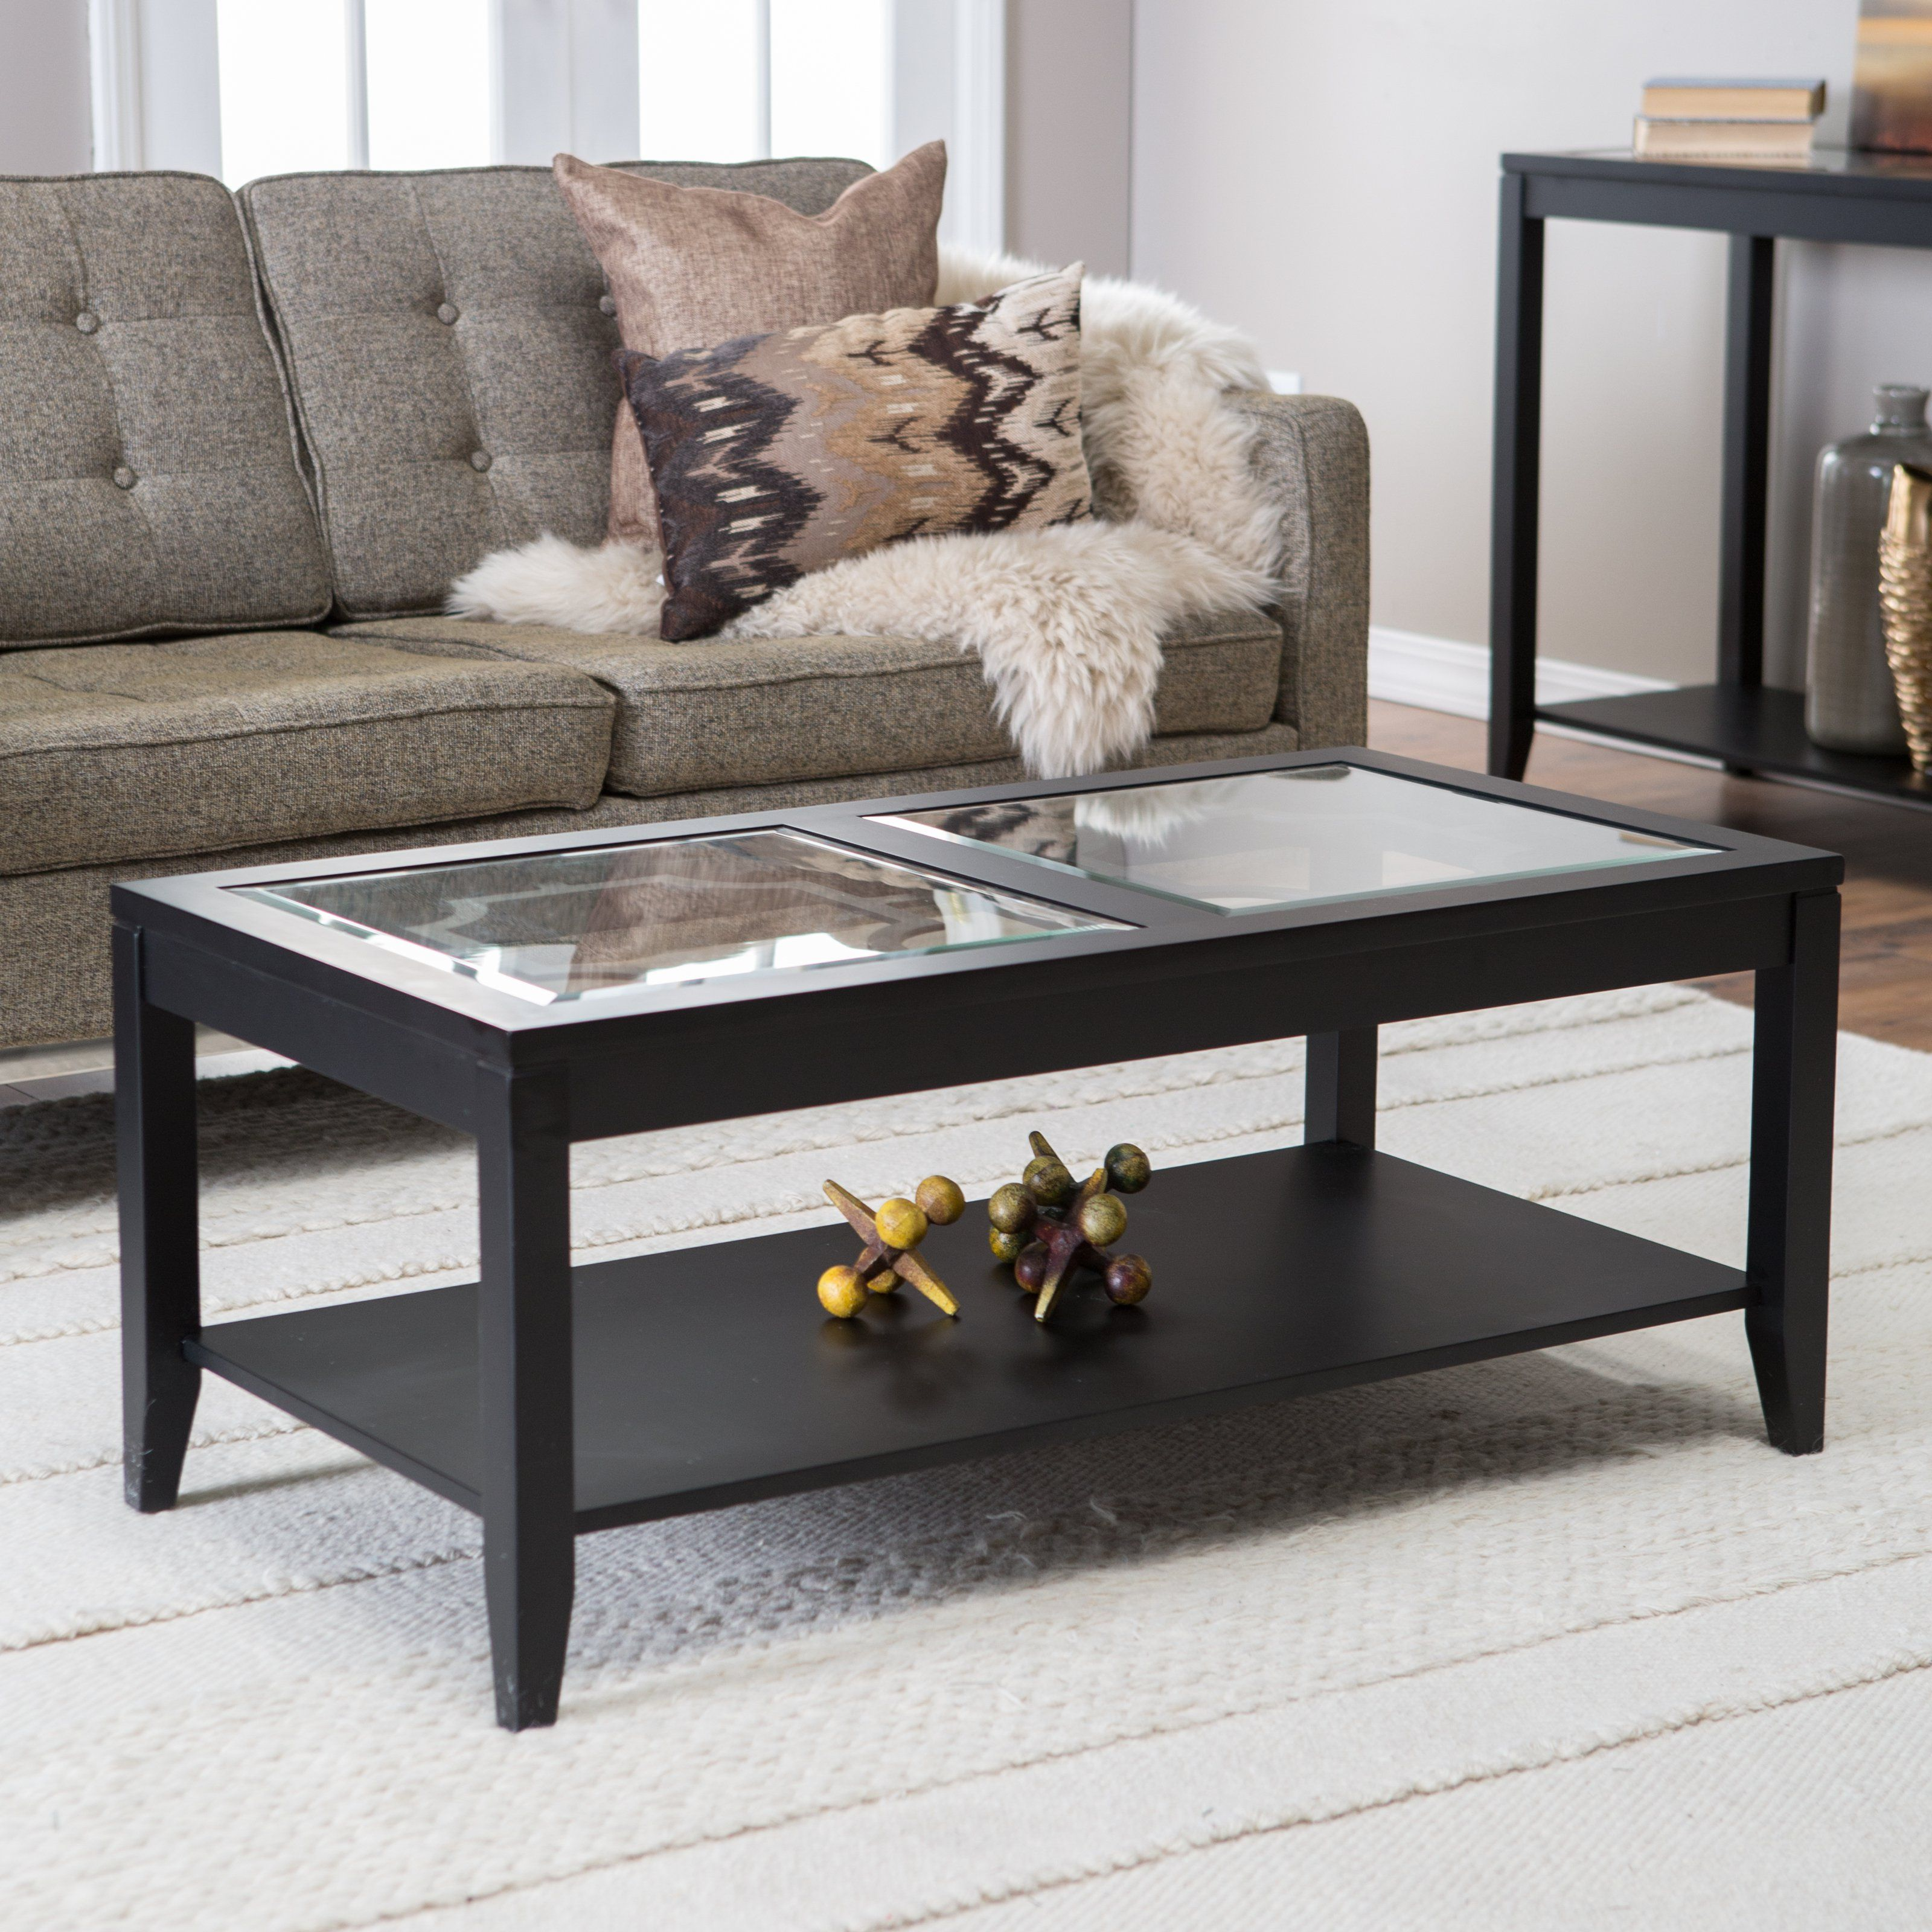 Espresso Coffee Table With Drawers Collection Glass Coffee Table Designs Amusing Dark Rectang [ 3200 x 3200 Pixel ]